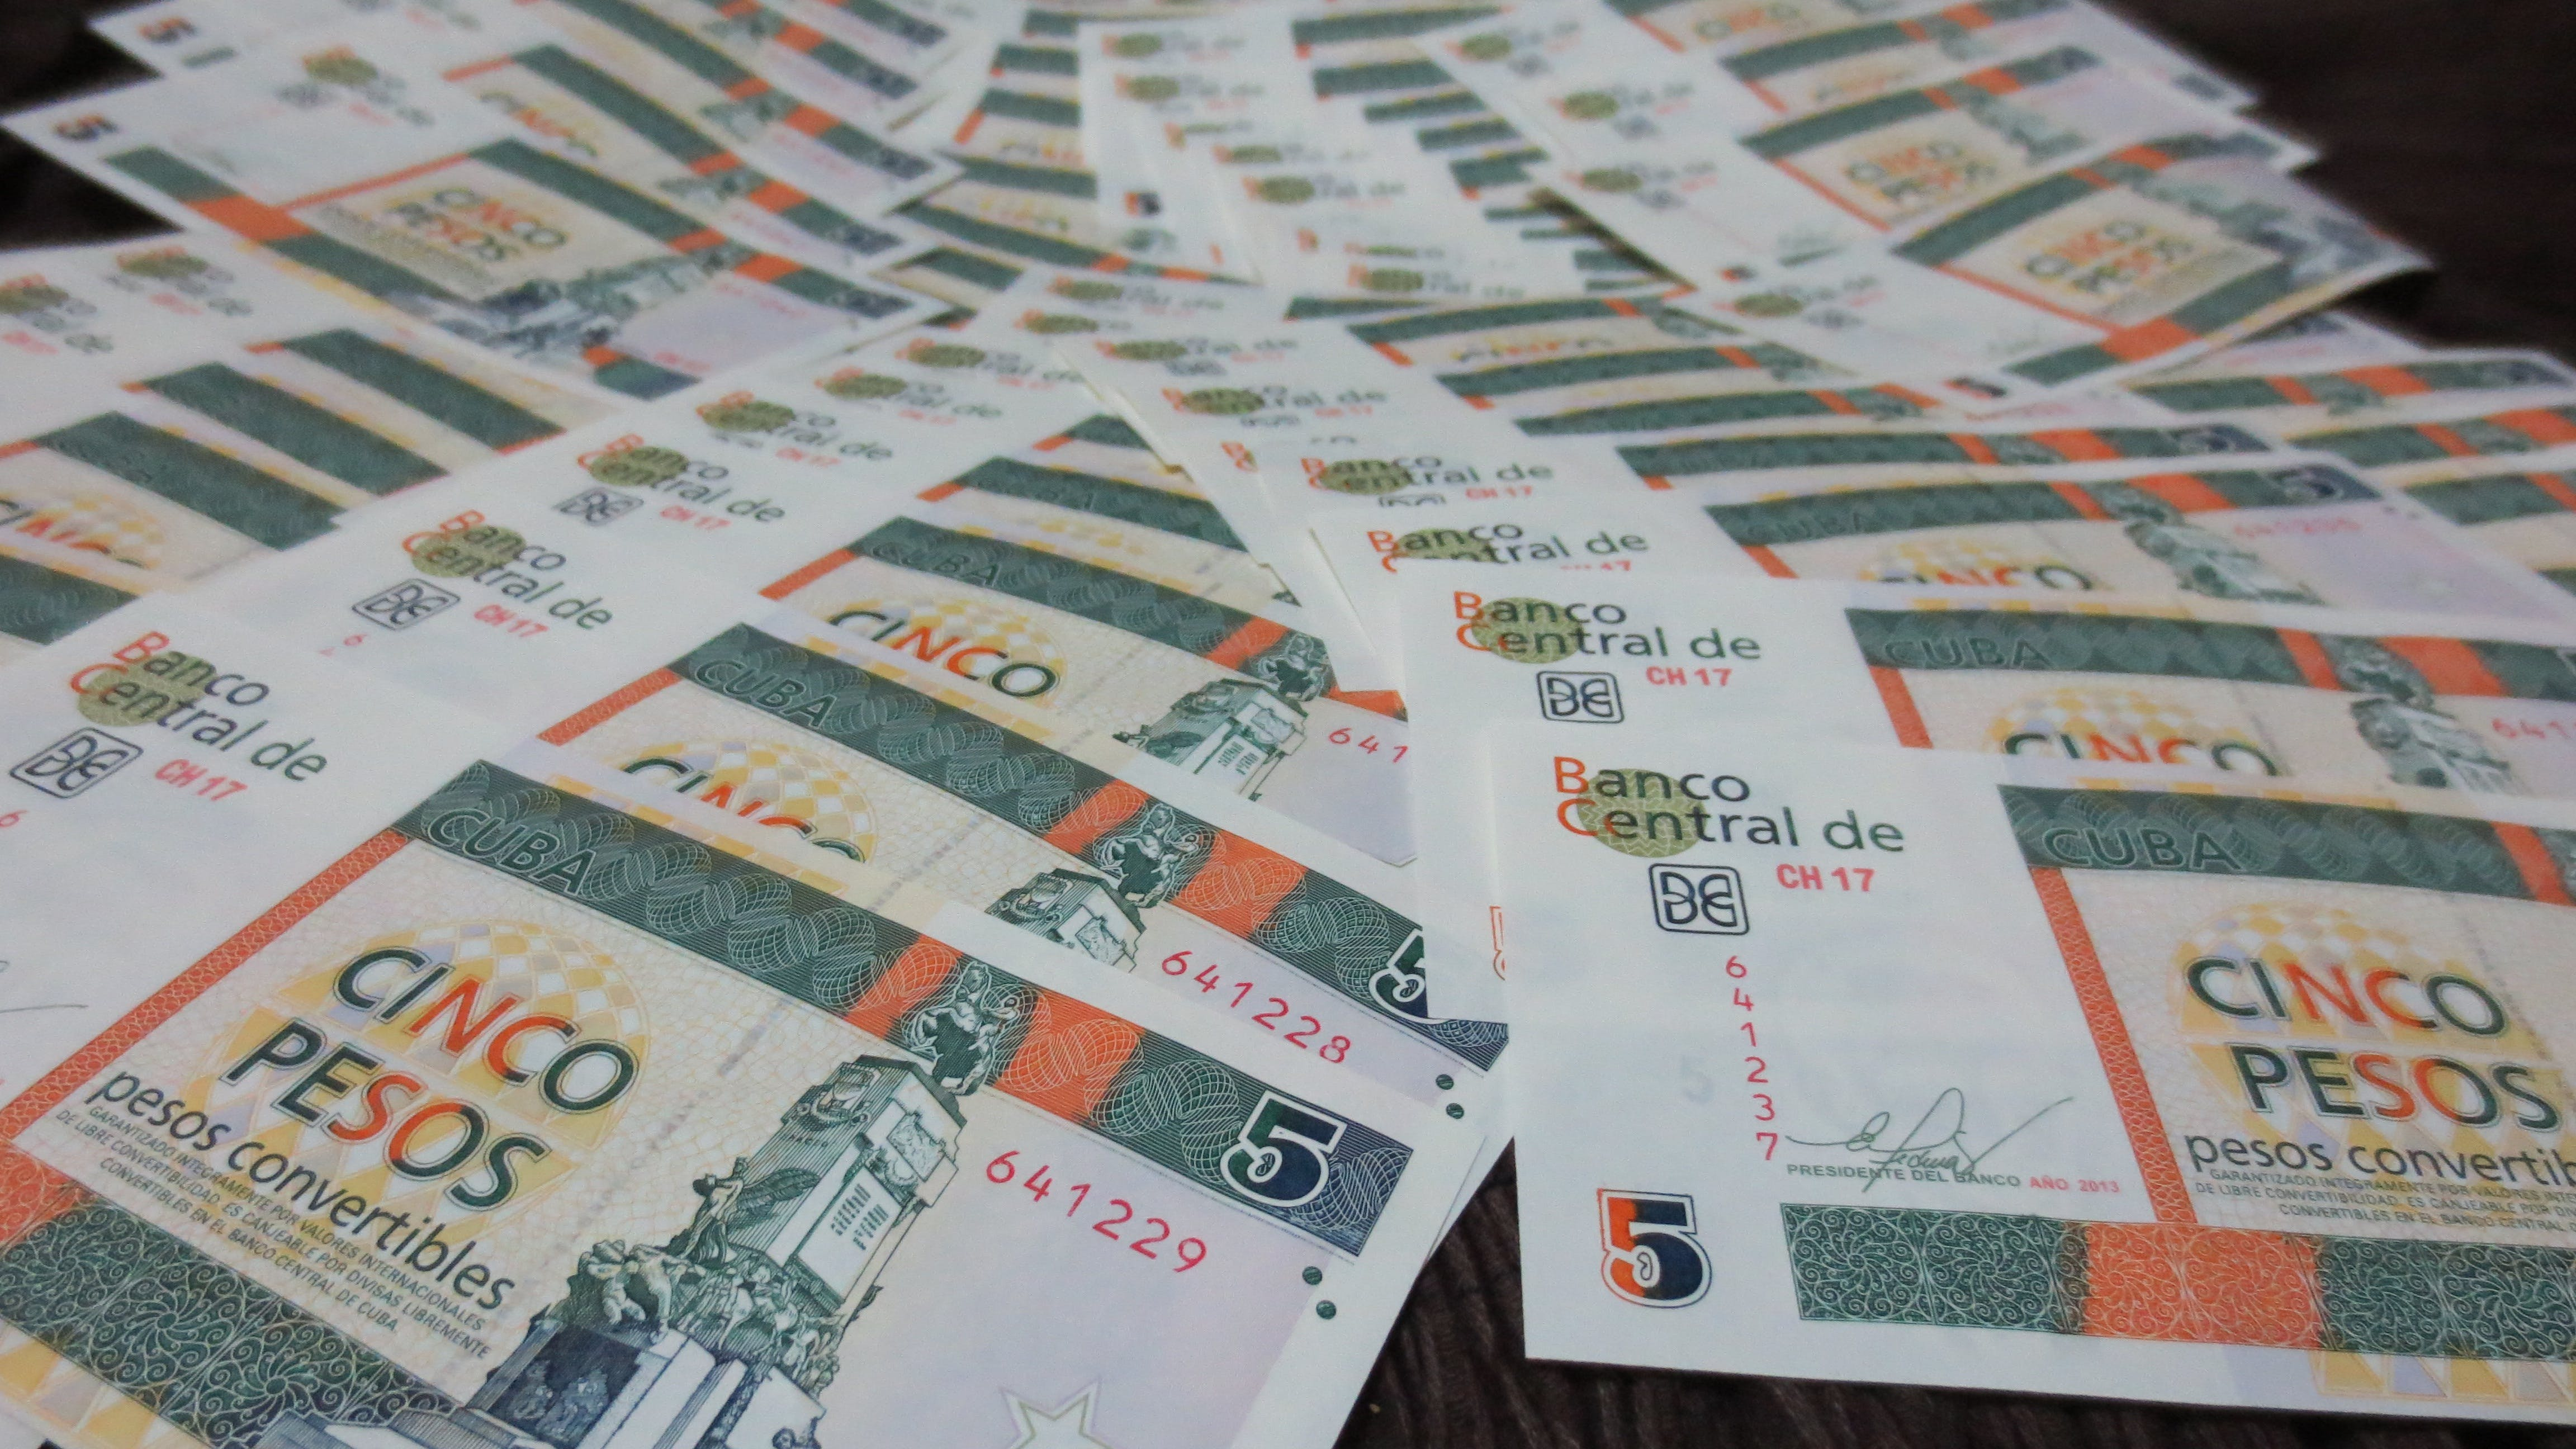 Free stock photo of banknote, cash and cash equivalents, cuba, cuc